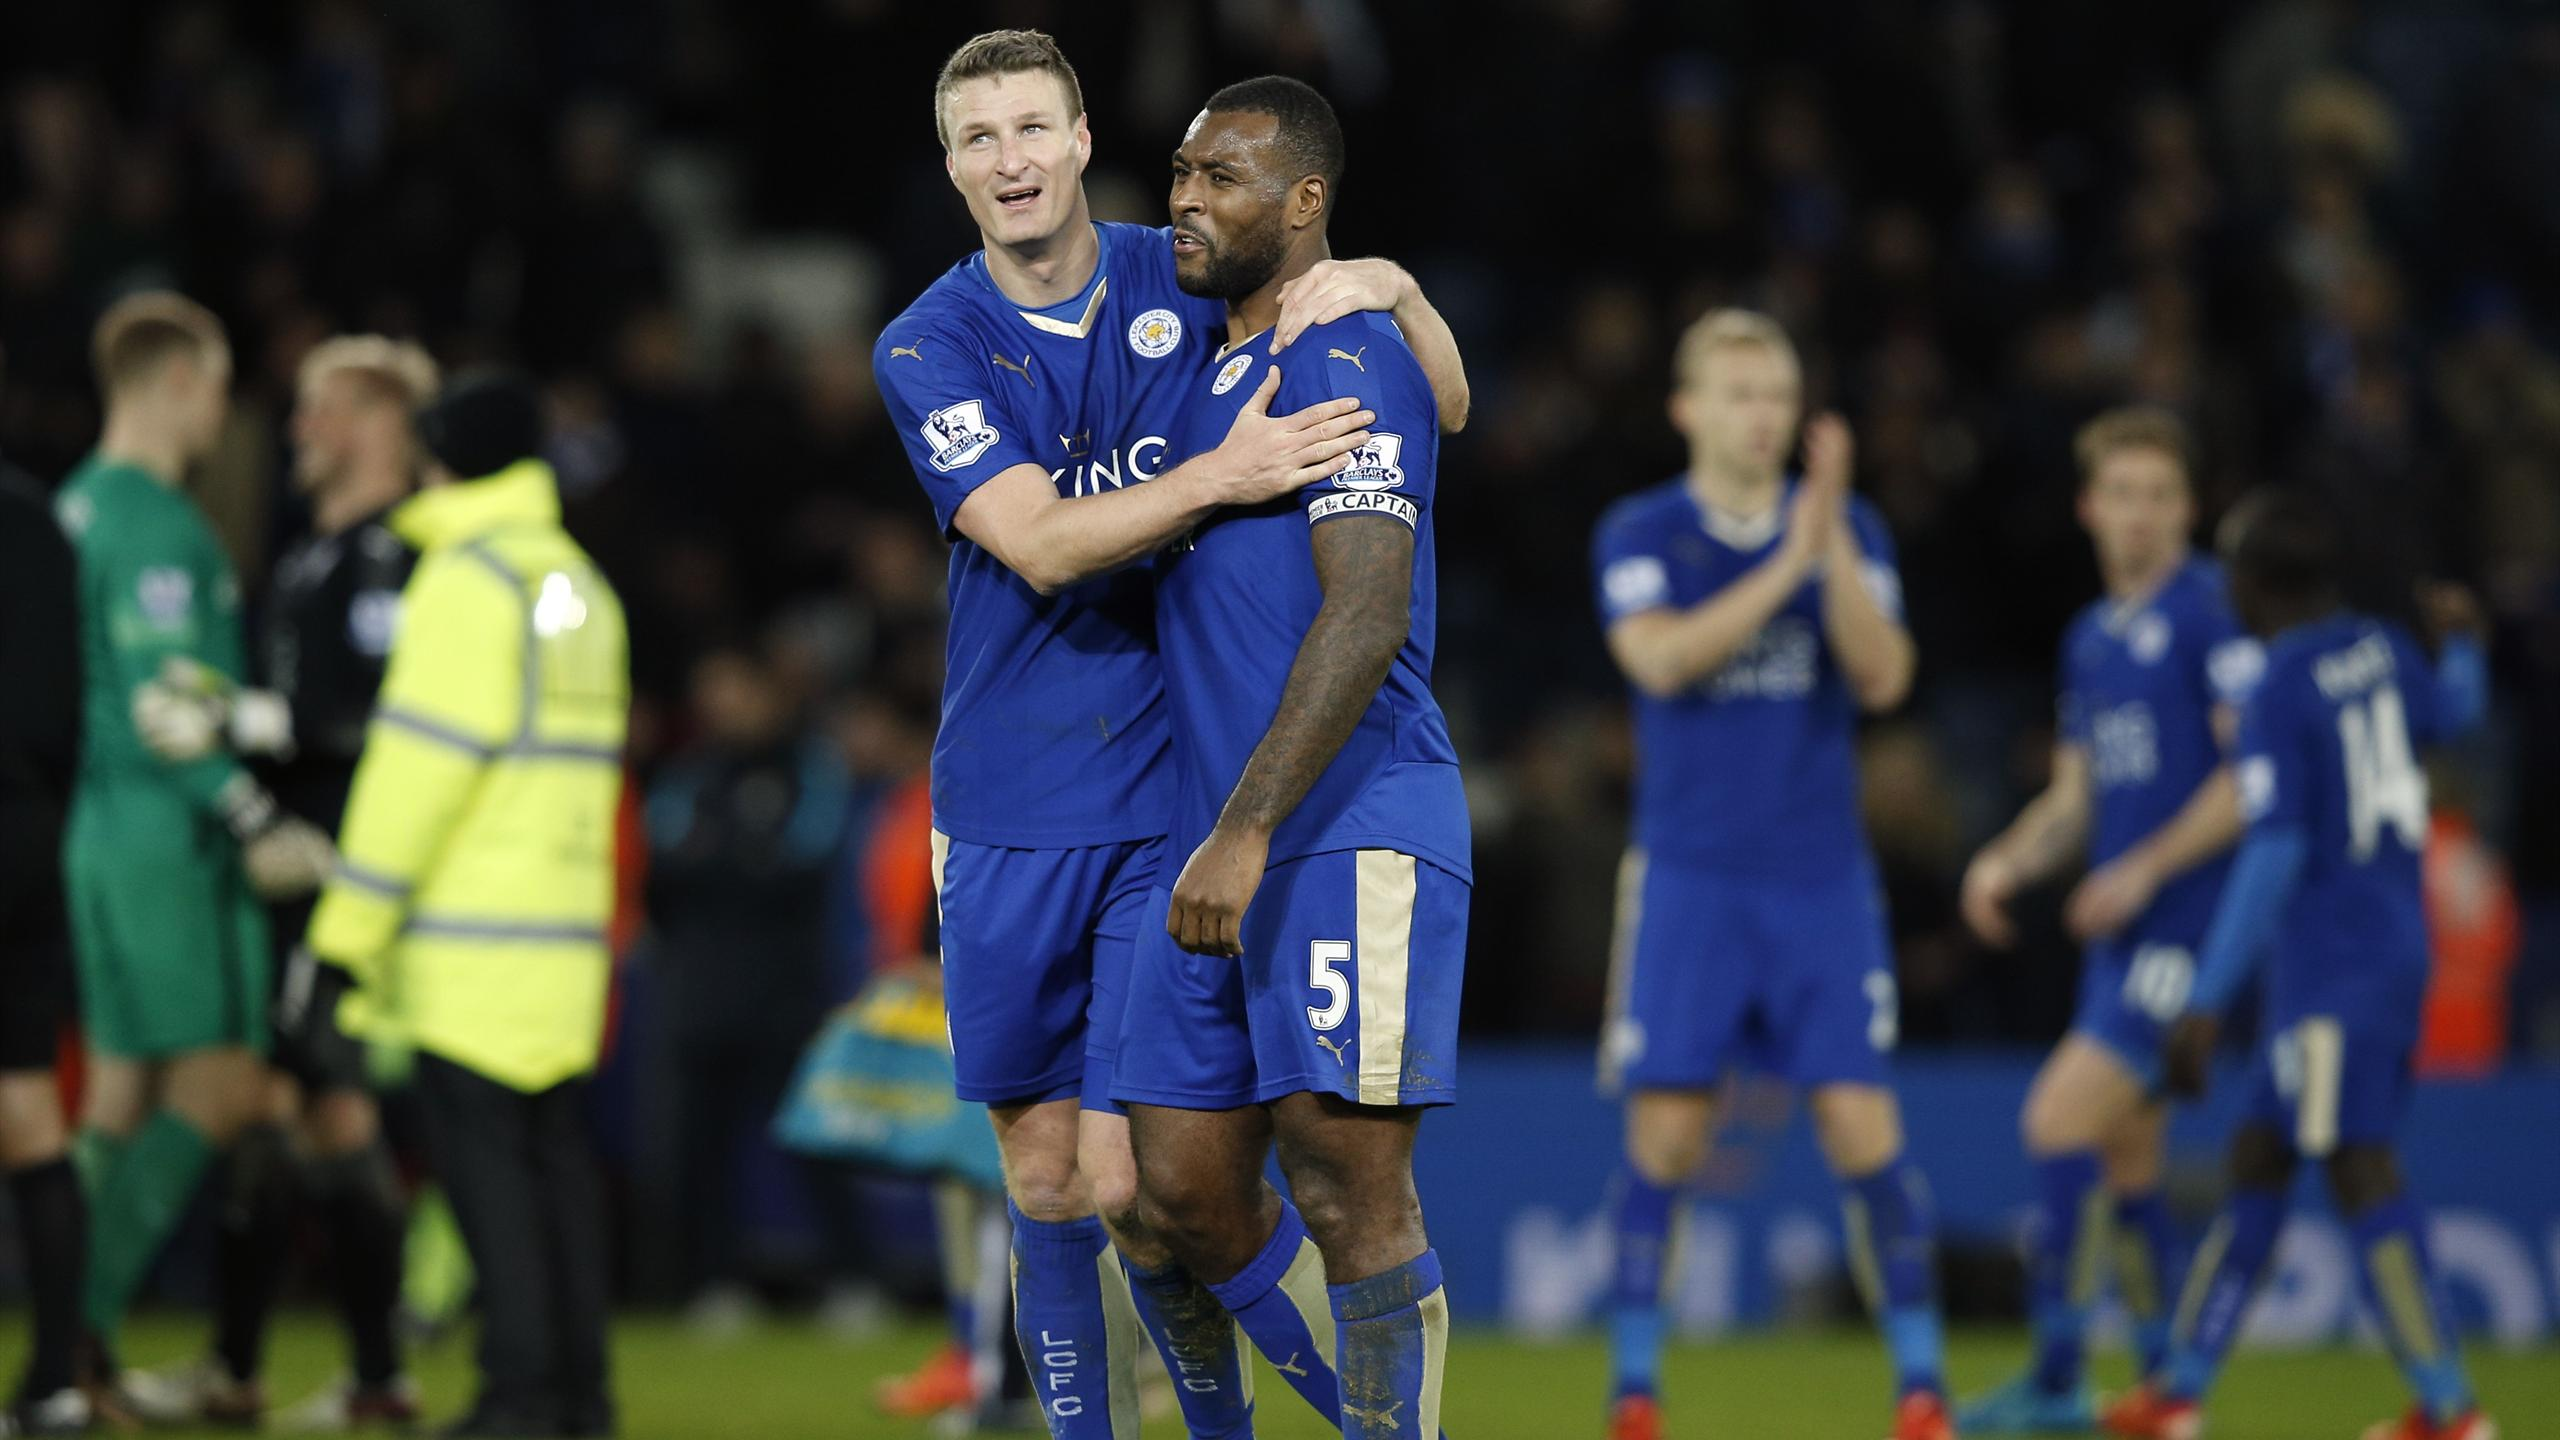 Leicester City's German defender Robert Huth and Leicester City's English defender Wes Morgan